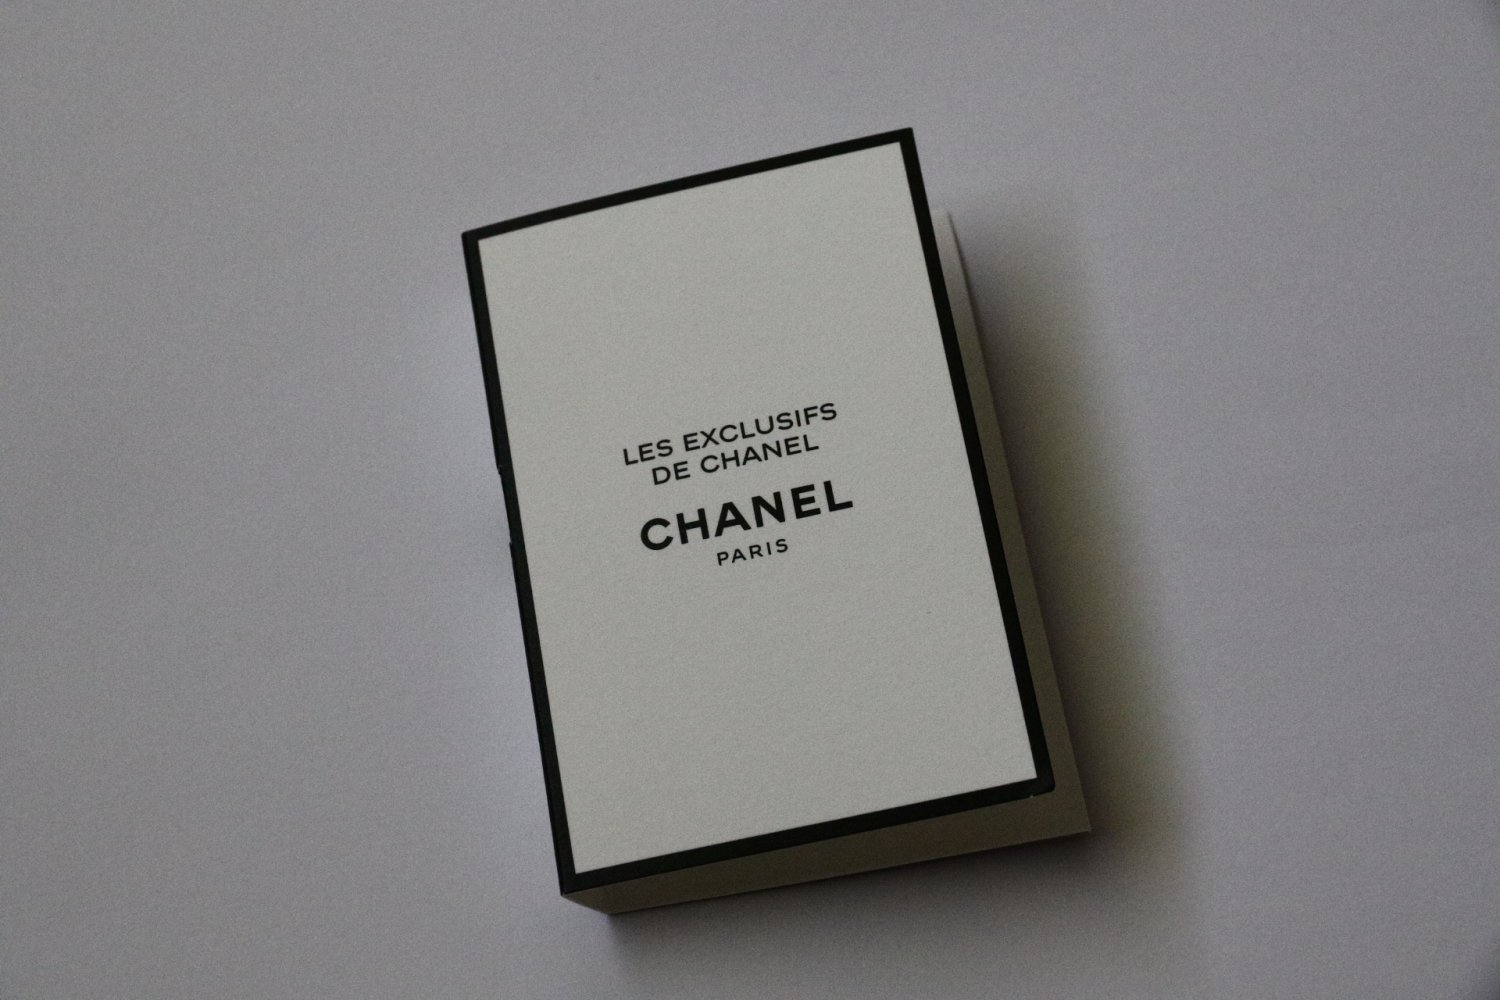 Chanel Les Exclusifs Misia Eau de Parfum Perfume Sample Spray 1.5 ml .05 oz New